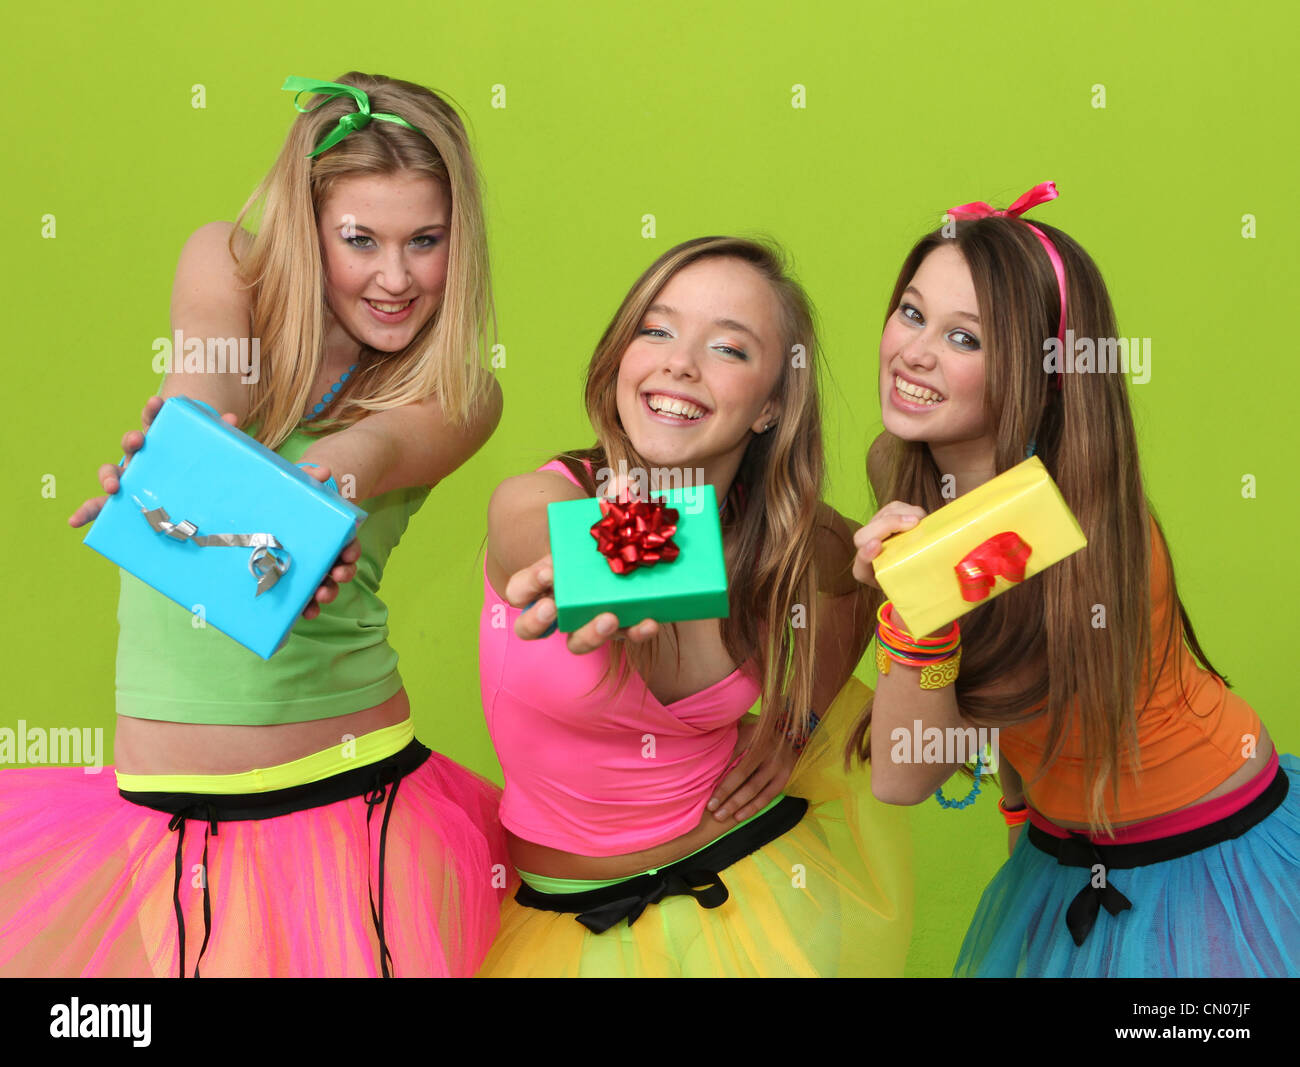 birthday party teens with gifts - Stock Image